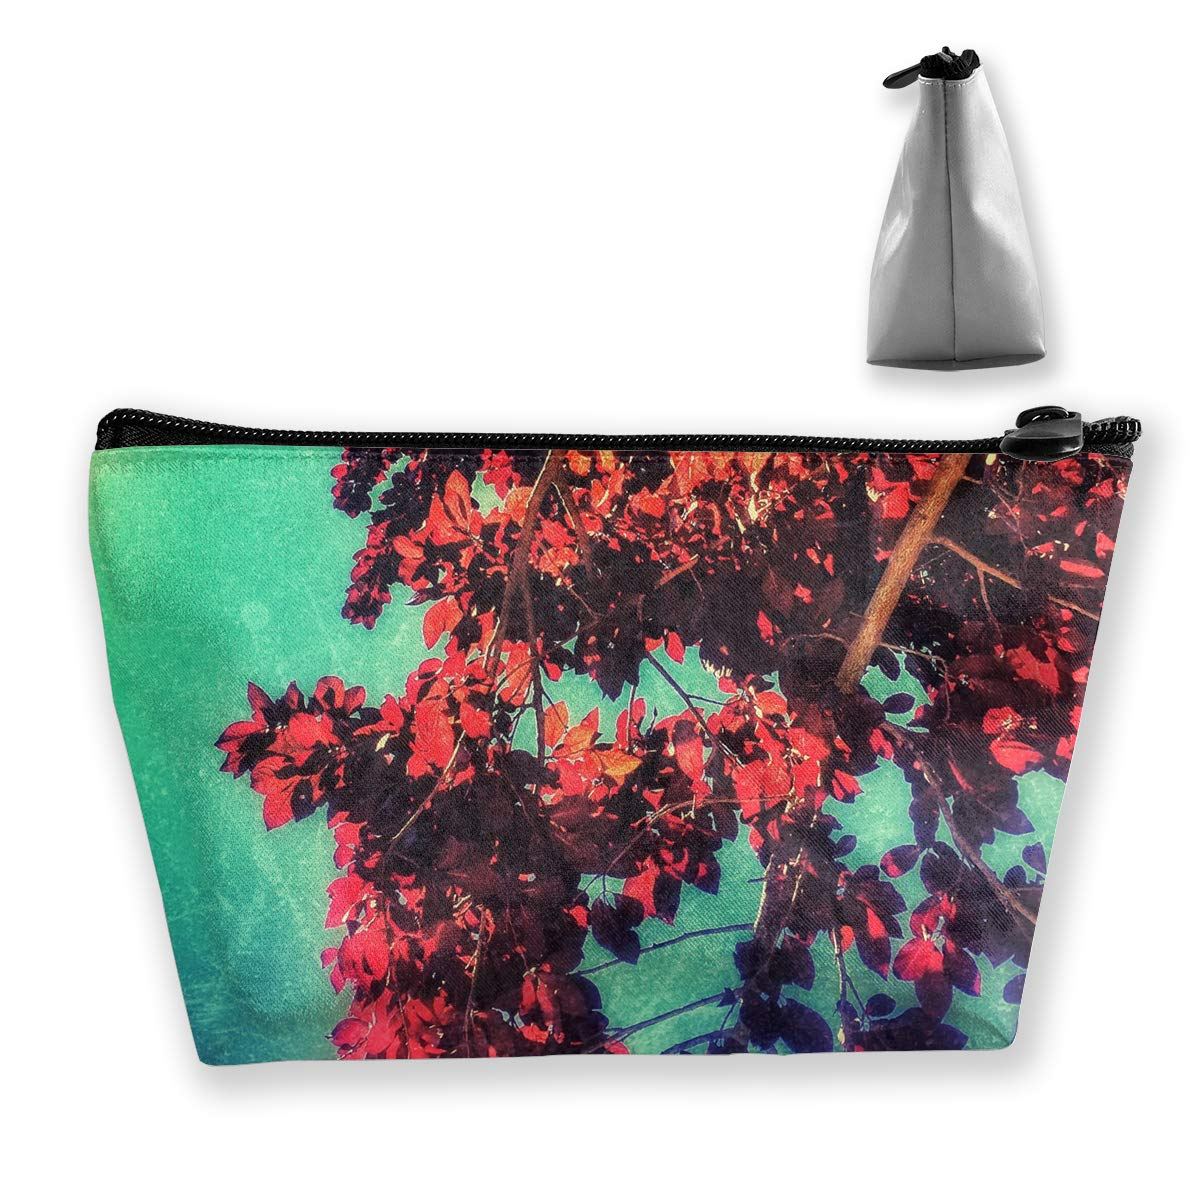 Trapezoid Toiletry Pouch Portable Travel Bag Leaves Tree Zipper Wallet